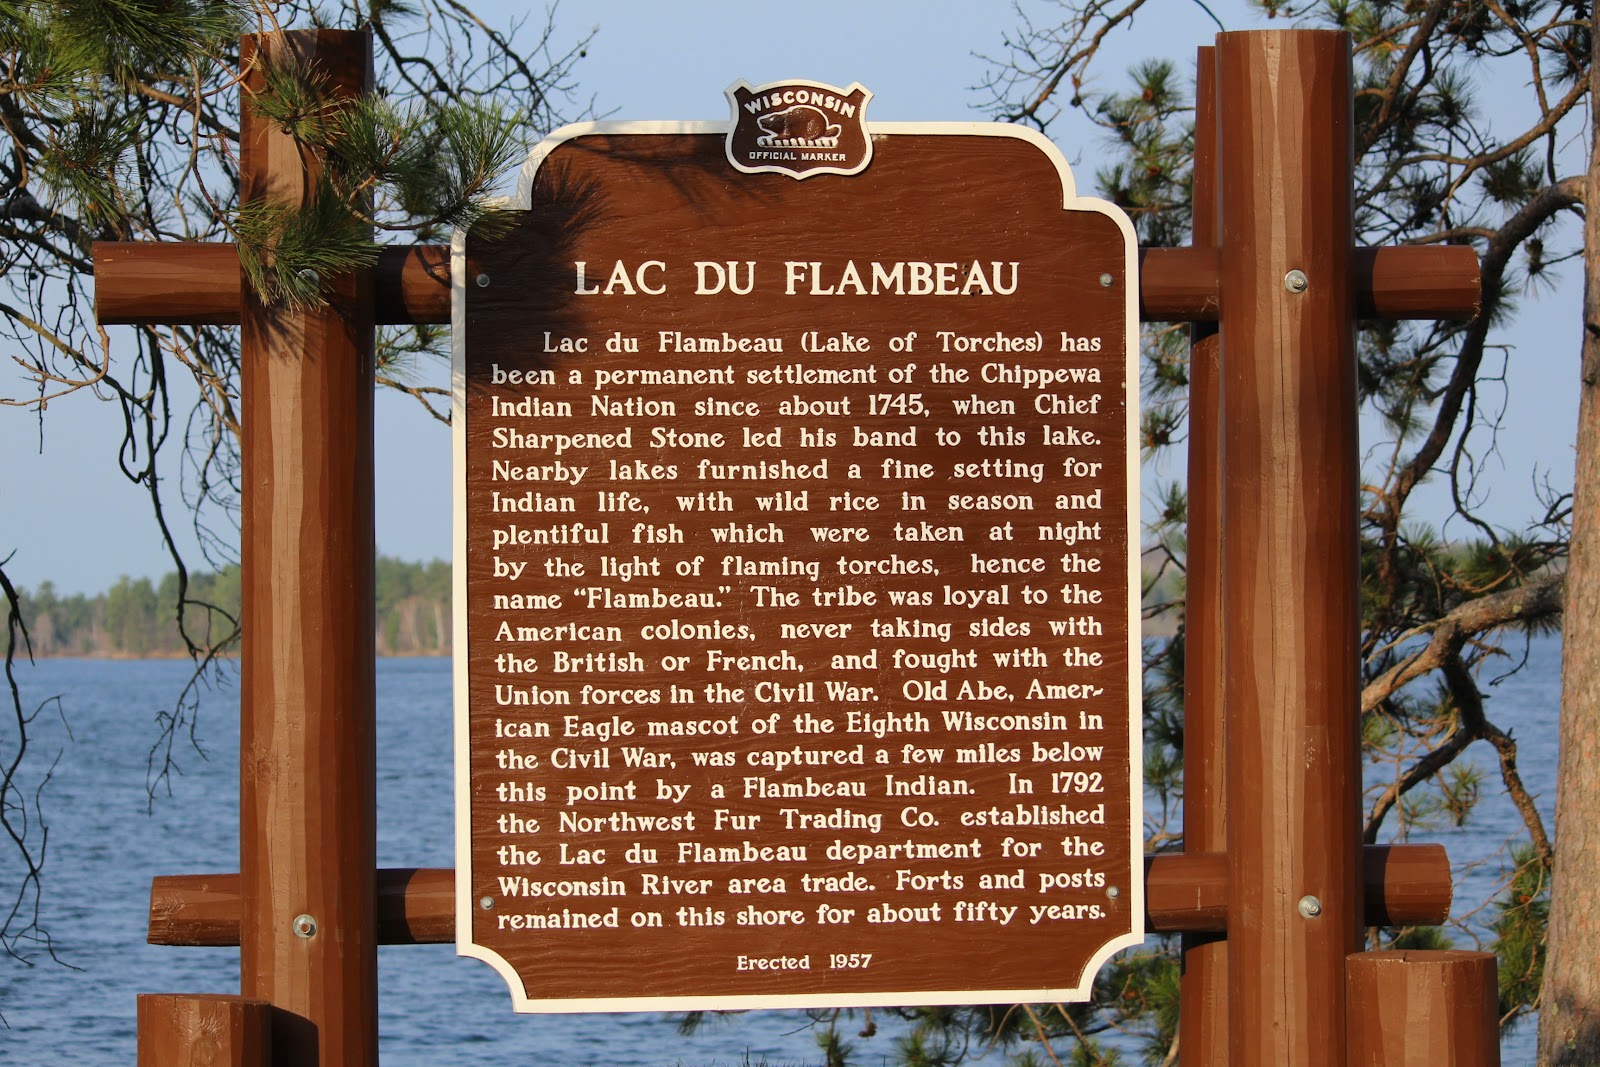 lac du flambeau hindu singles 2081 tree line dr, lac du flambeau, wi 54538 is a single family home for sale browse realtorcom® for nearby schools and neighborhood information find homes similar to 2081 tree line dr within your price range.